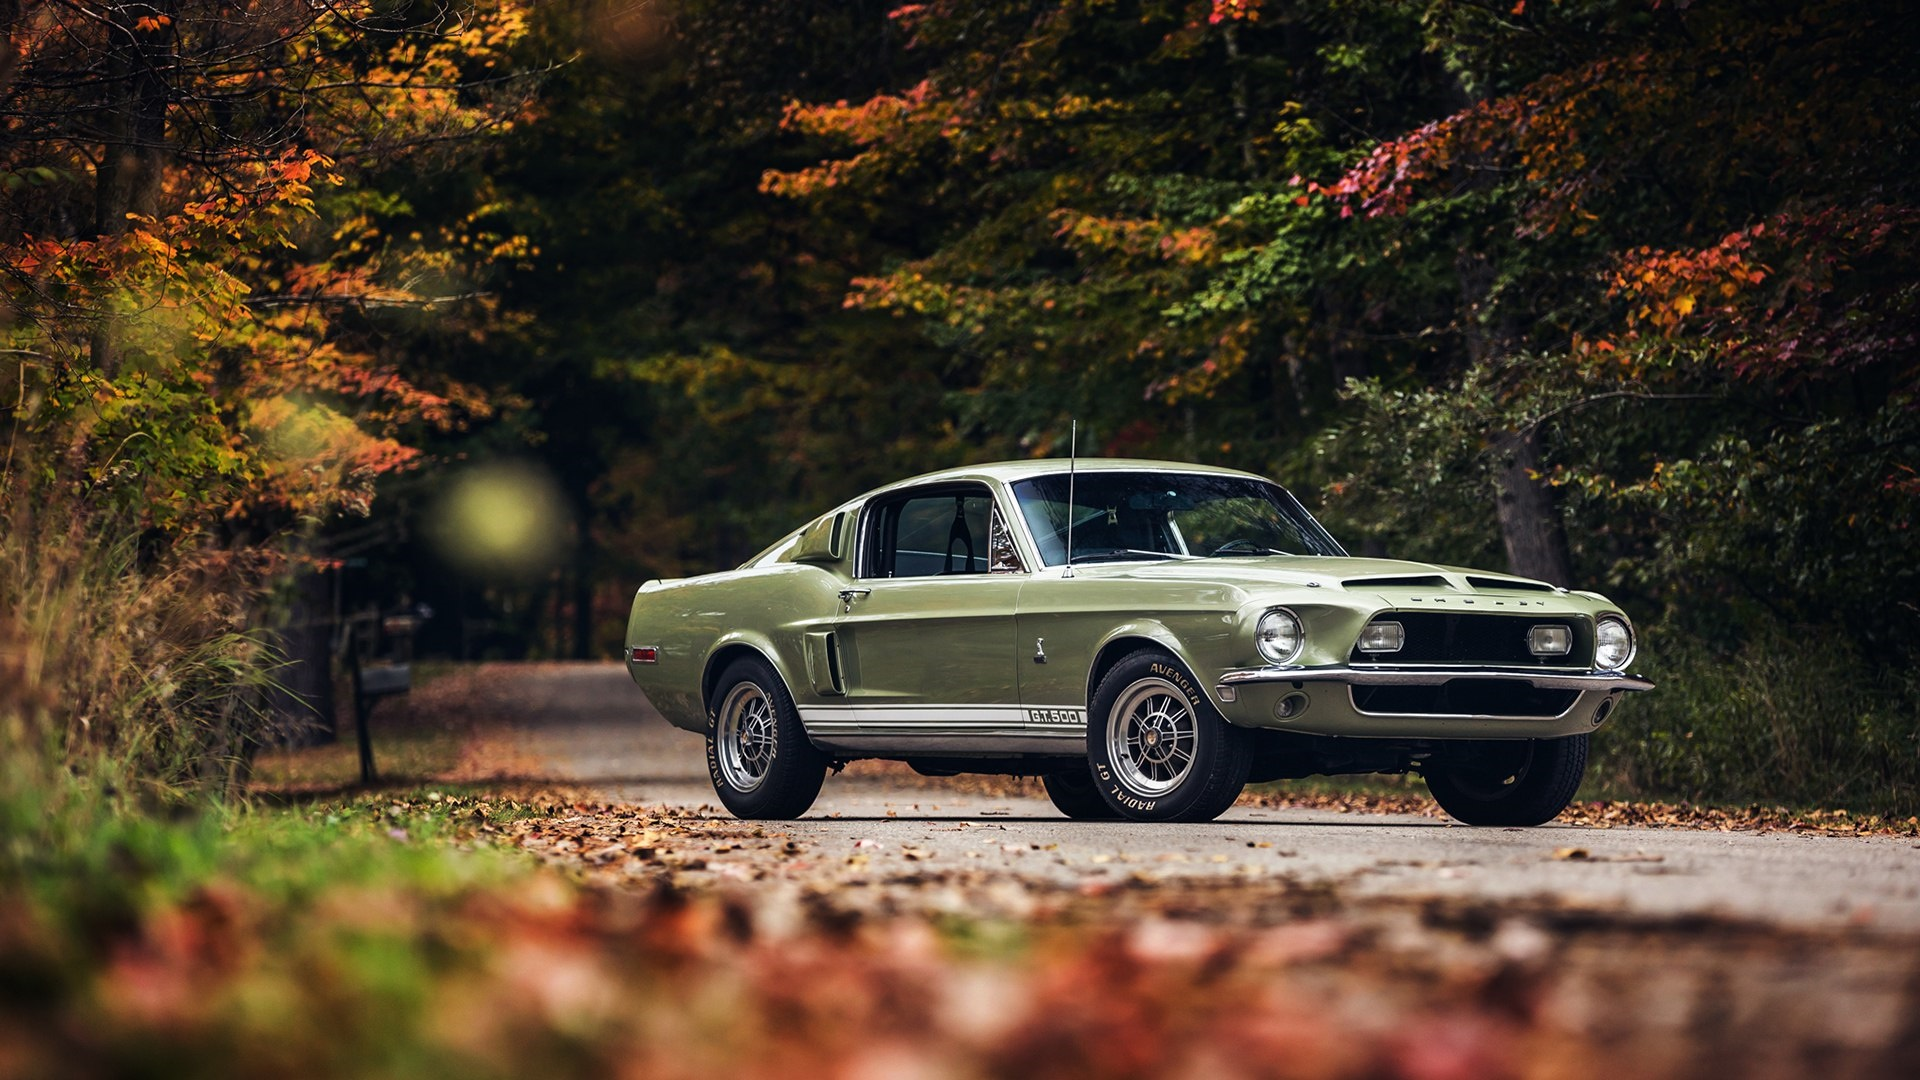 1968 Ford Mustang Shelby GT500 wallpaper